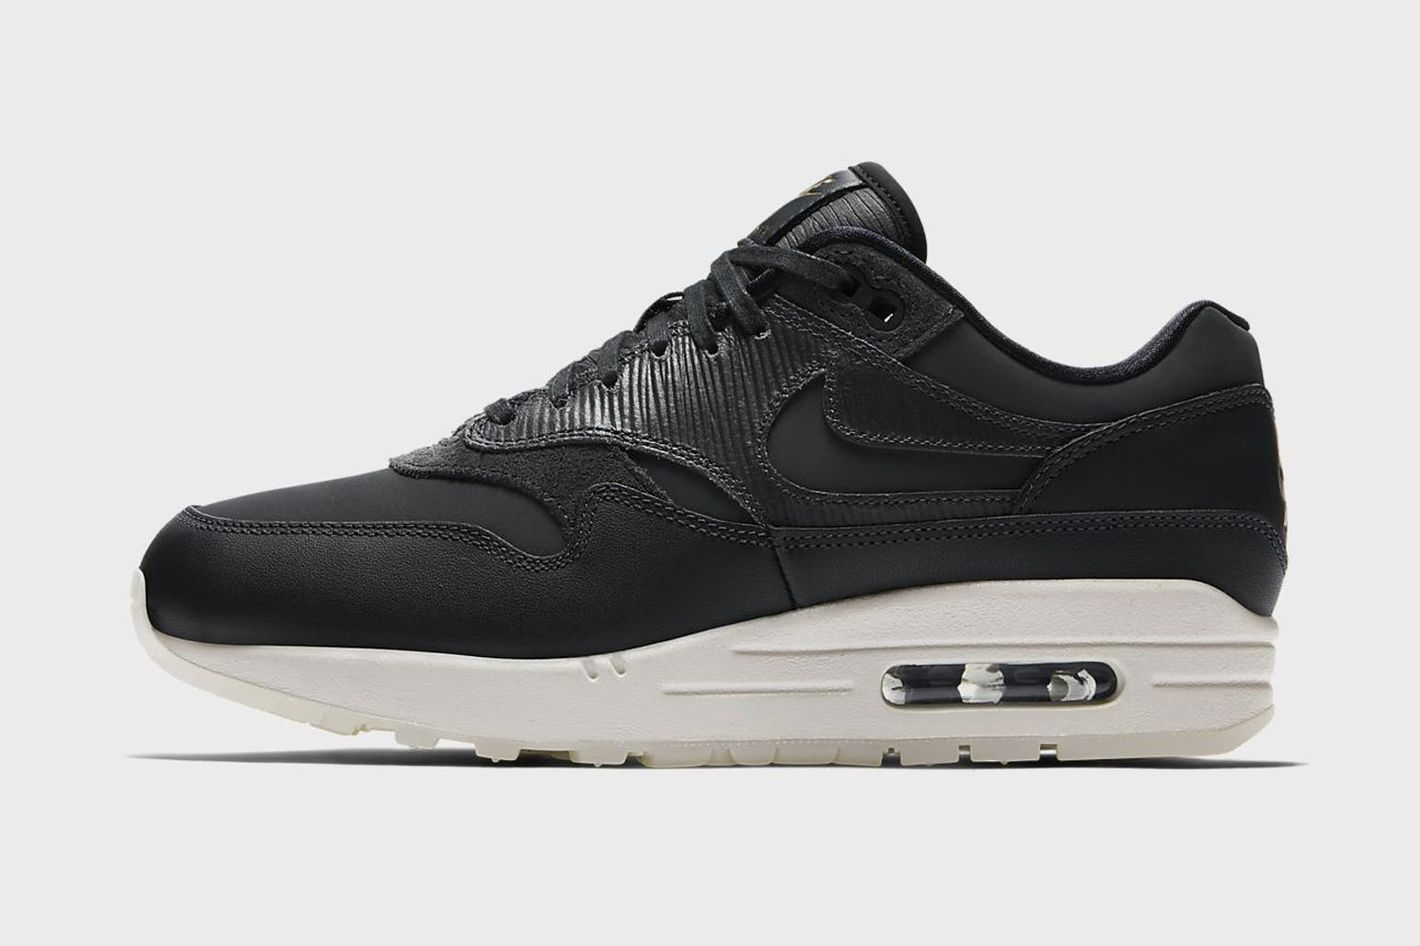 half off a7141 4aeab Nike Air Max 1 Premium Women s Shoe